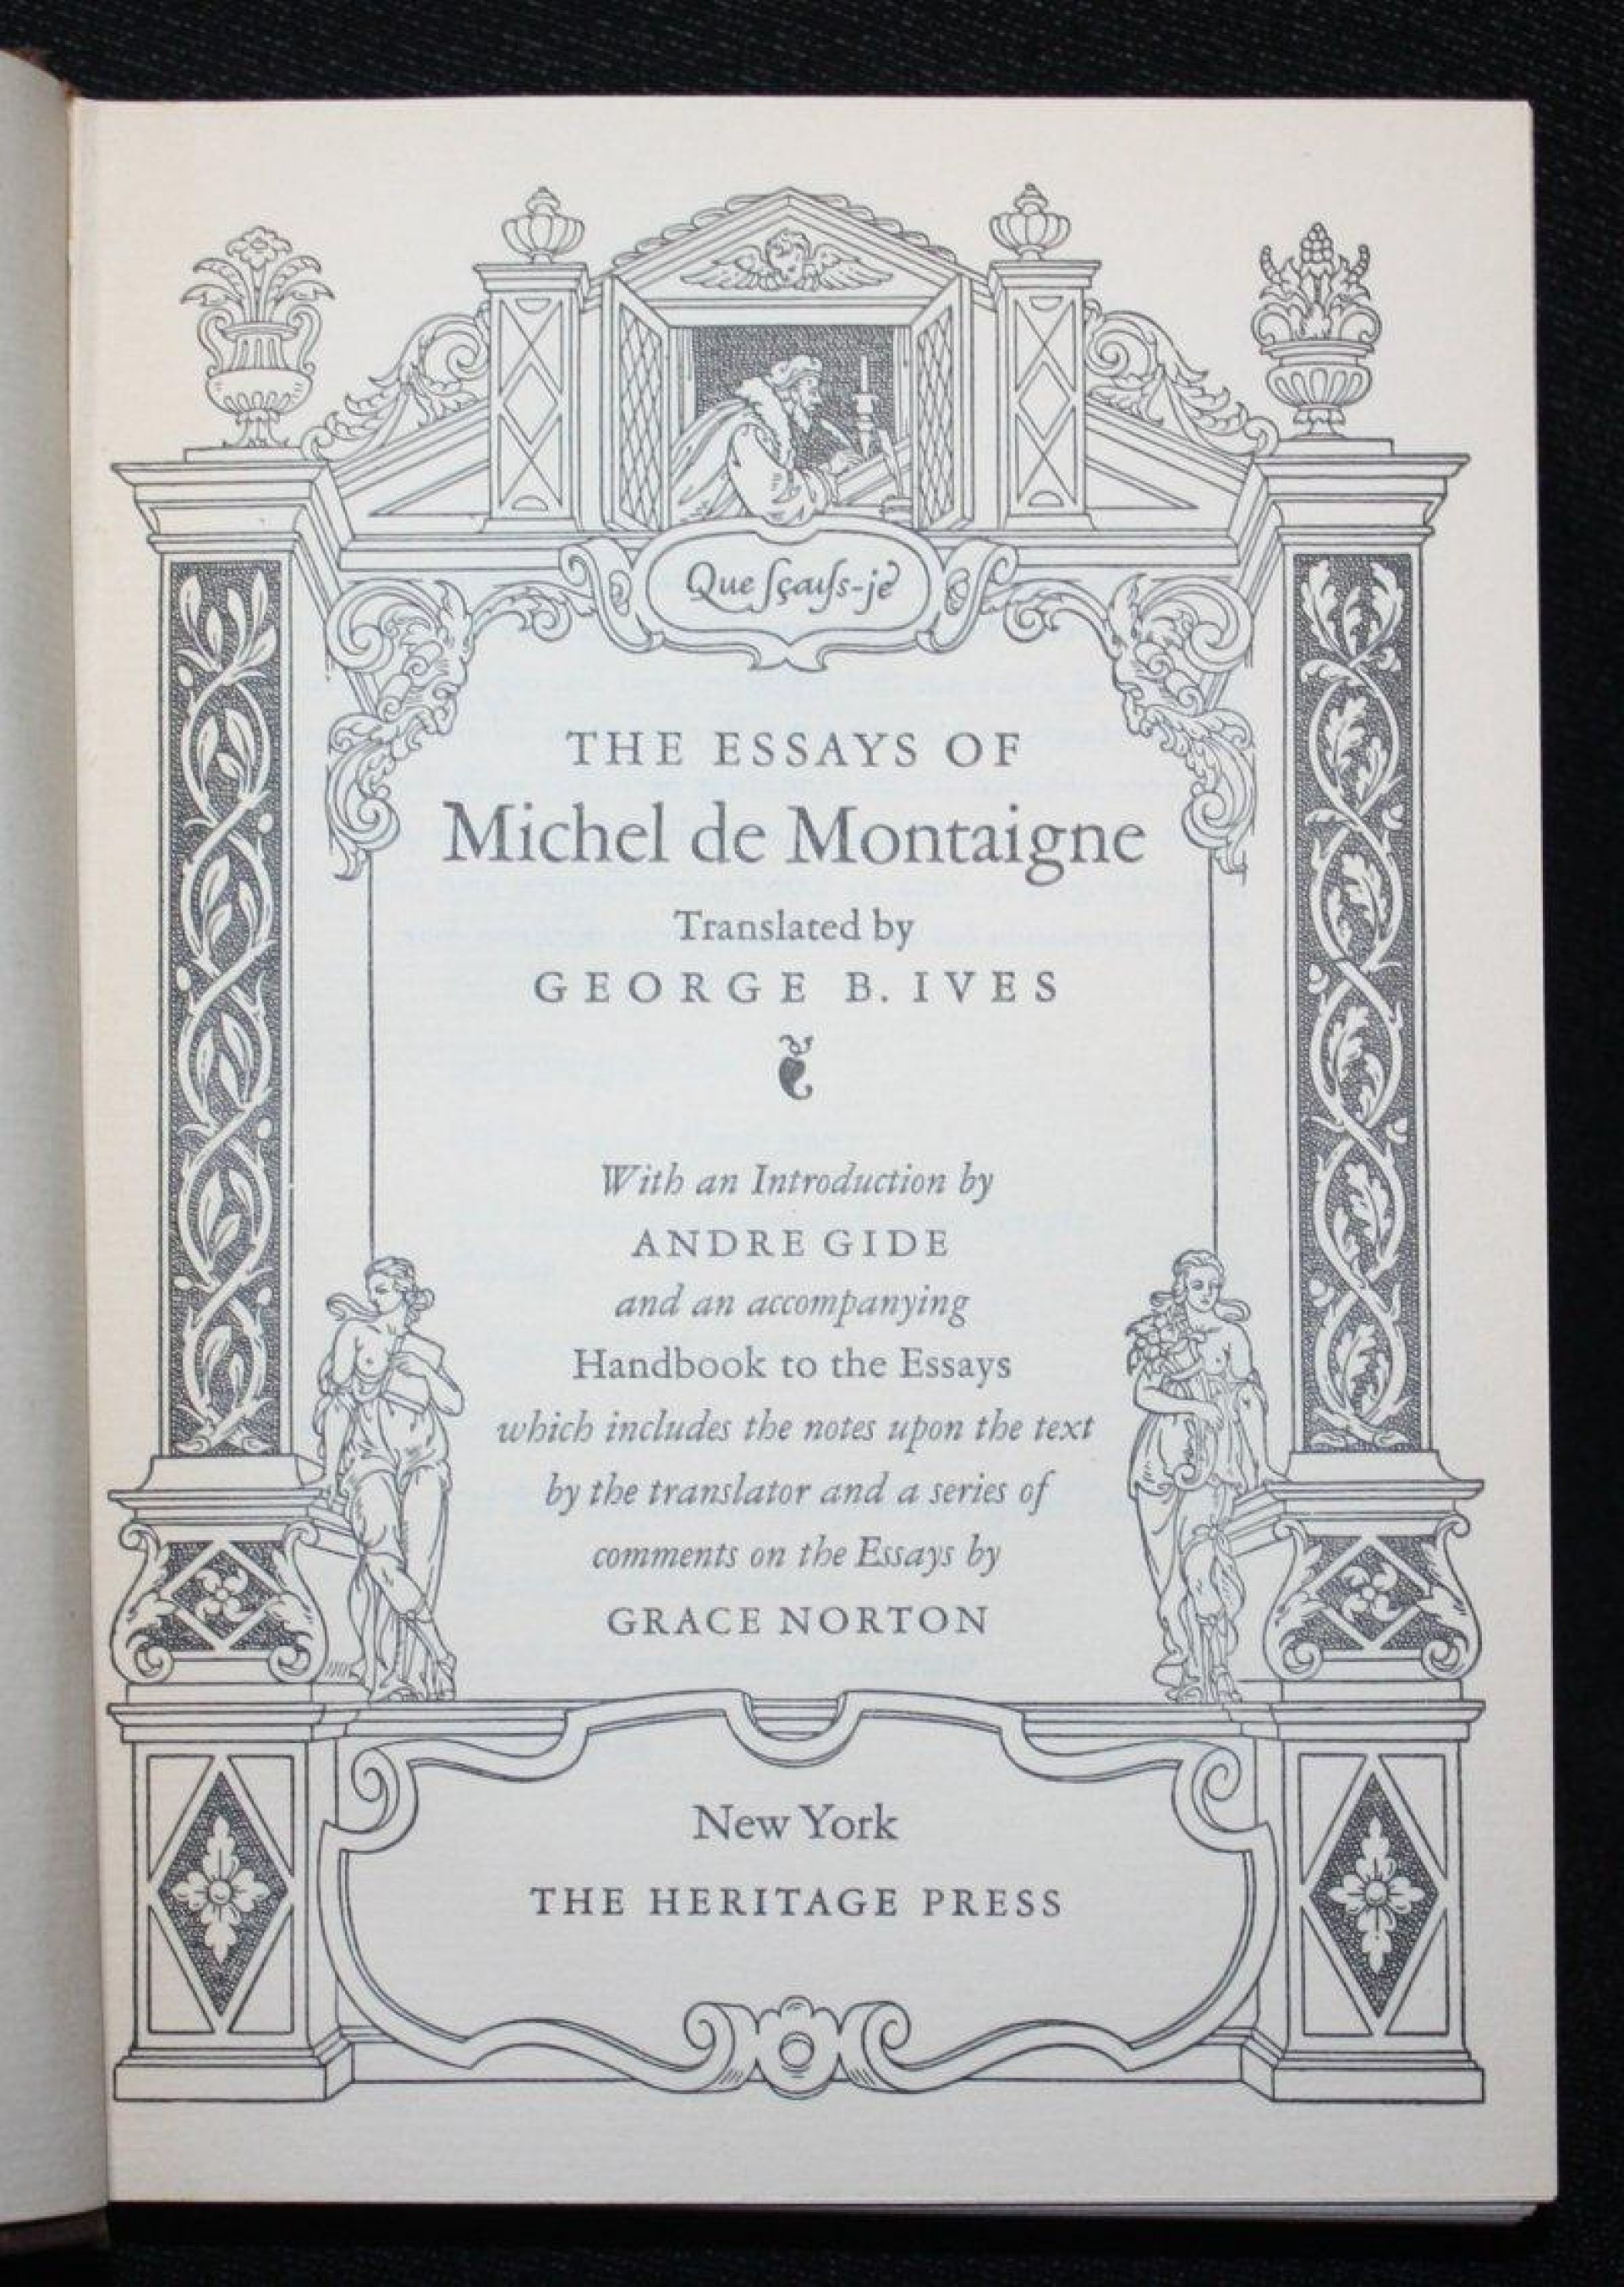 006 Essay Example Montaigne Essays Sparknotes 8892895374 4 Unbelievable Of Cannibals 1920